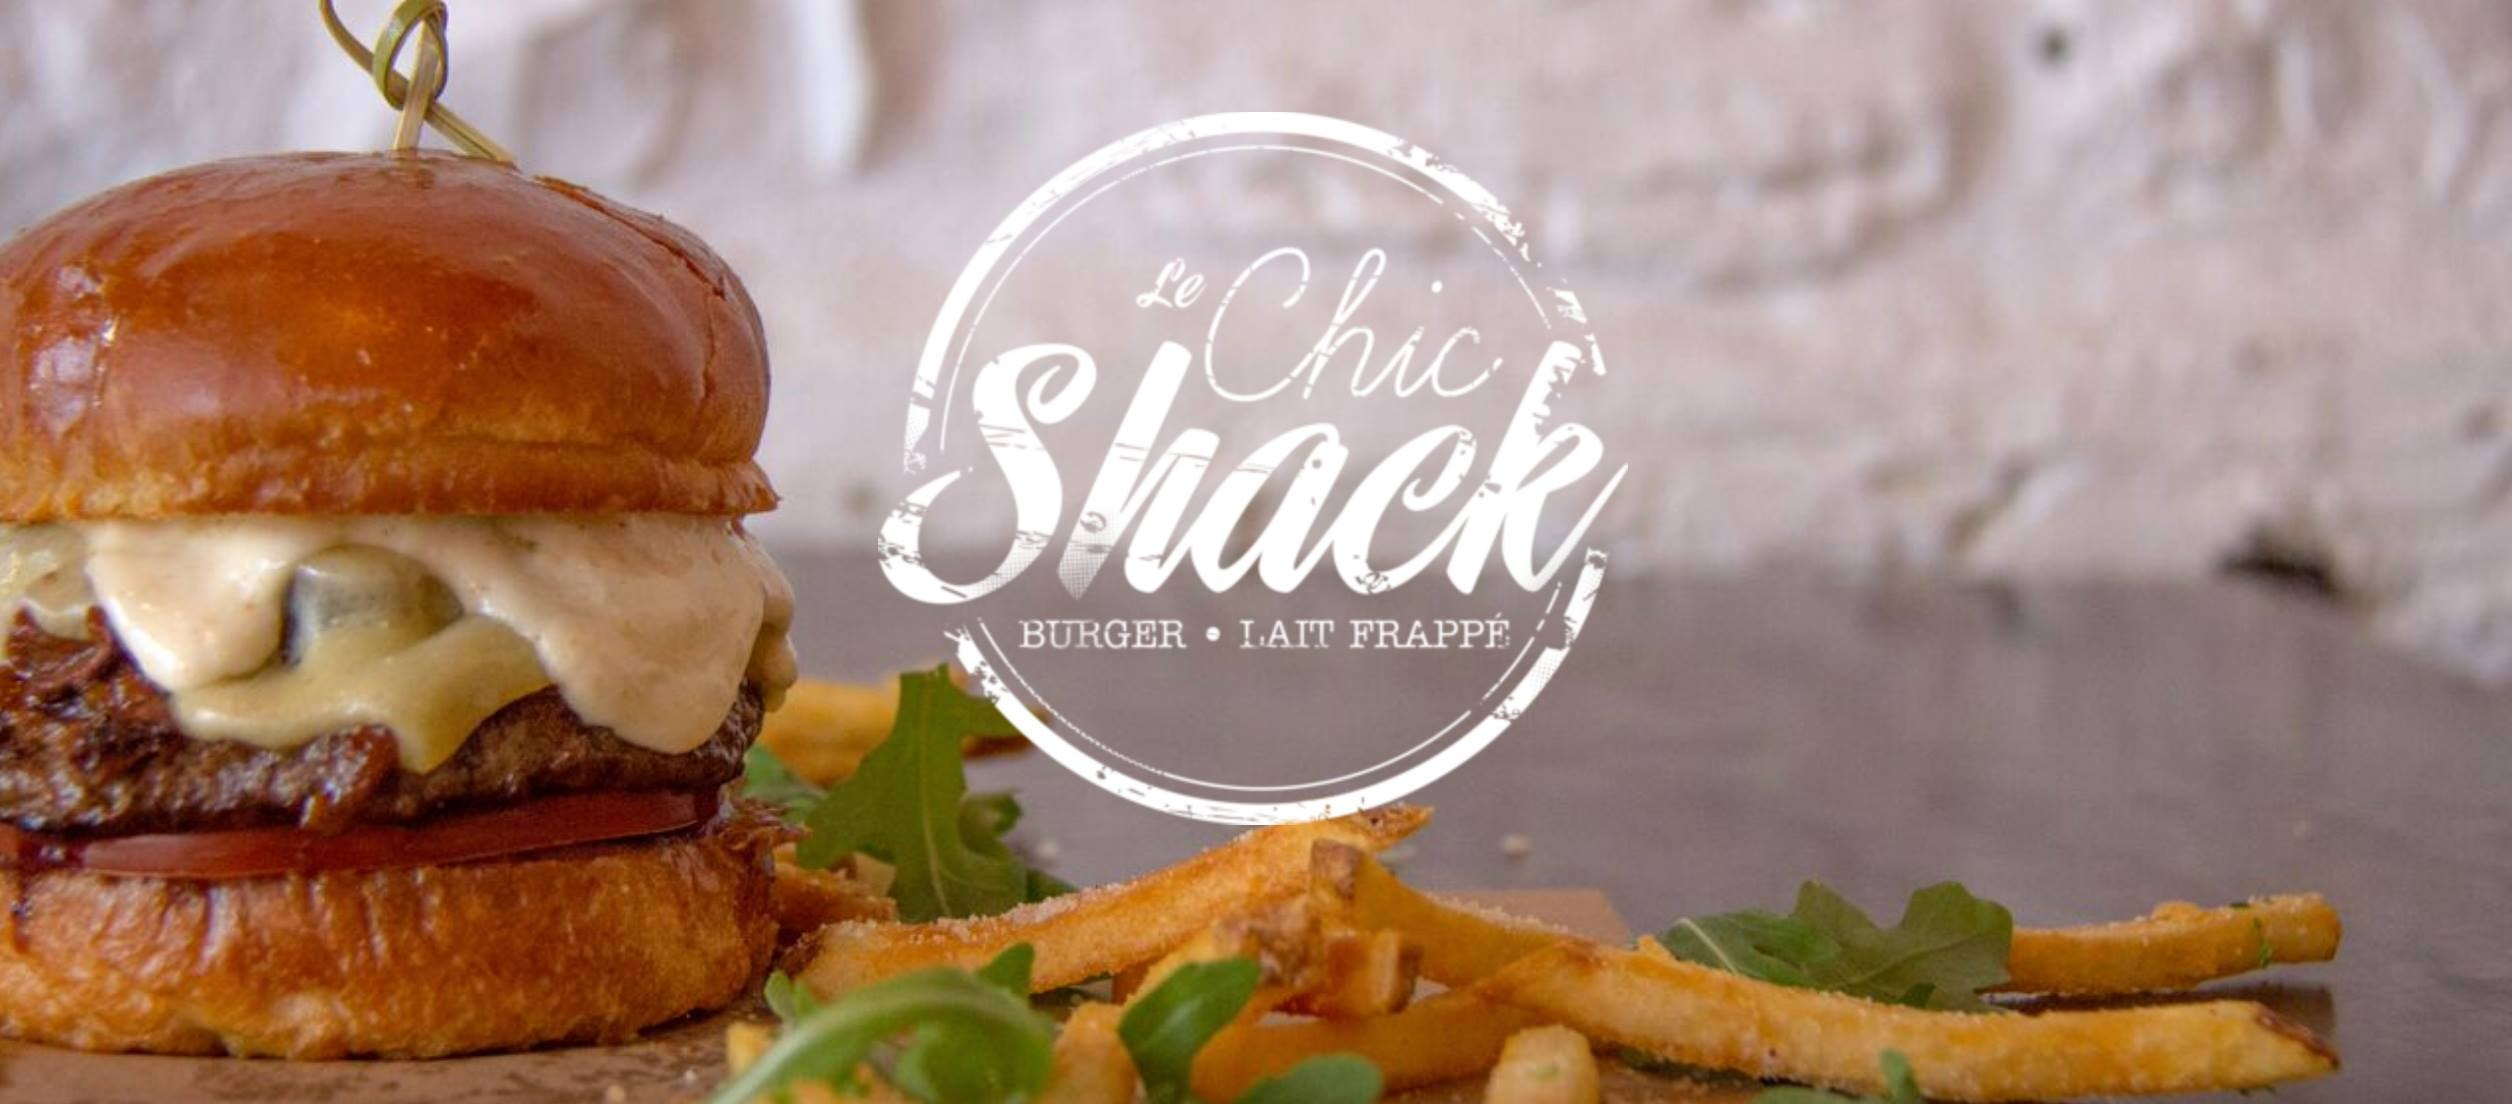 restaurant-chic-shack